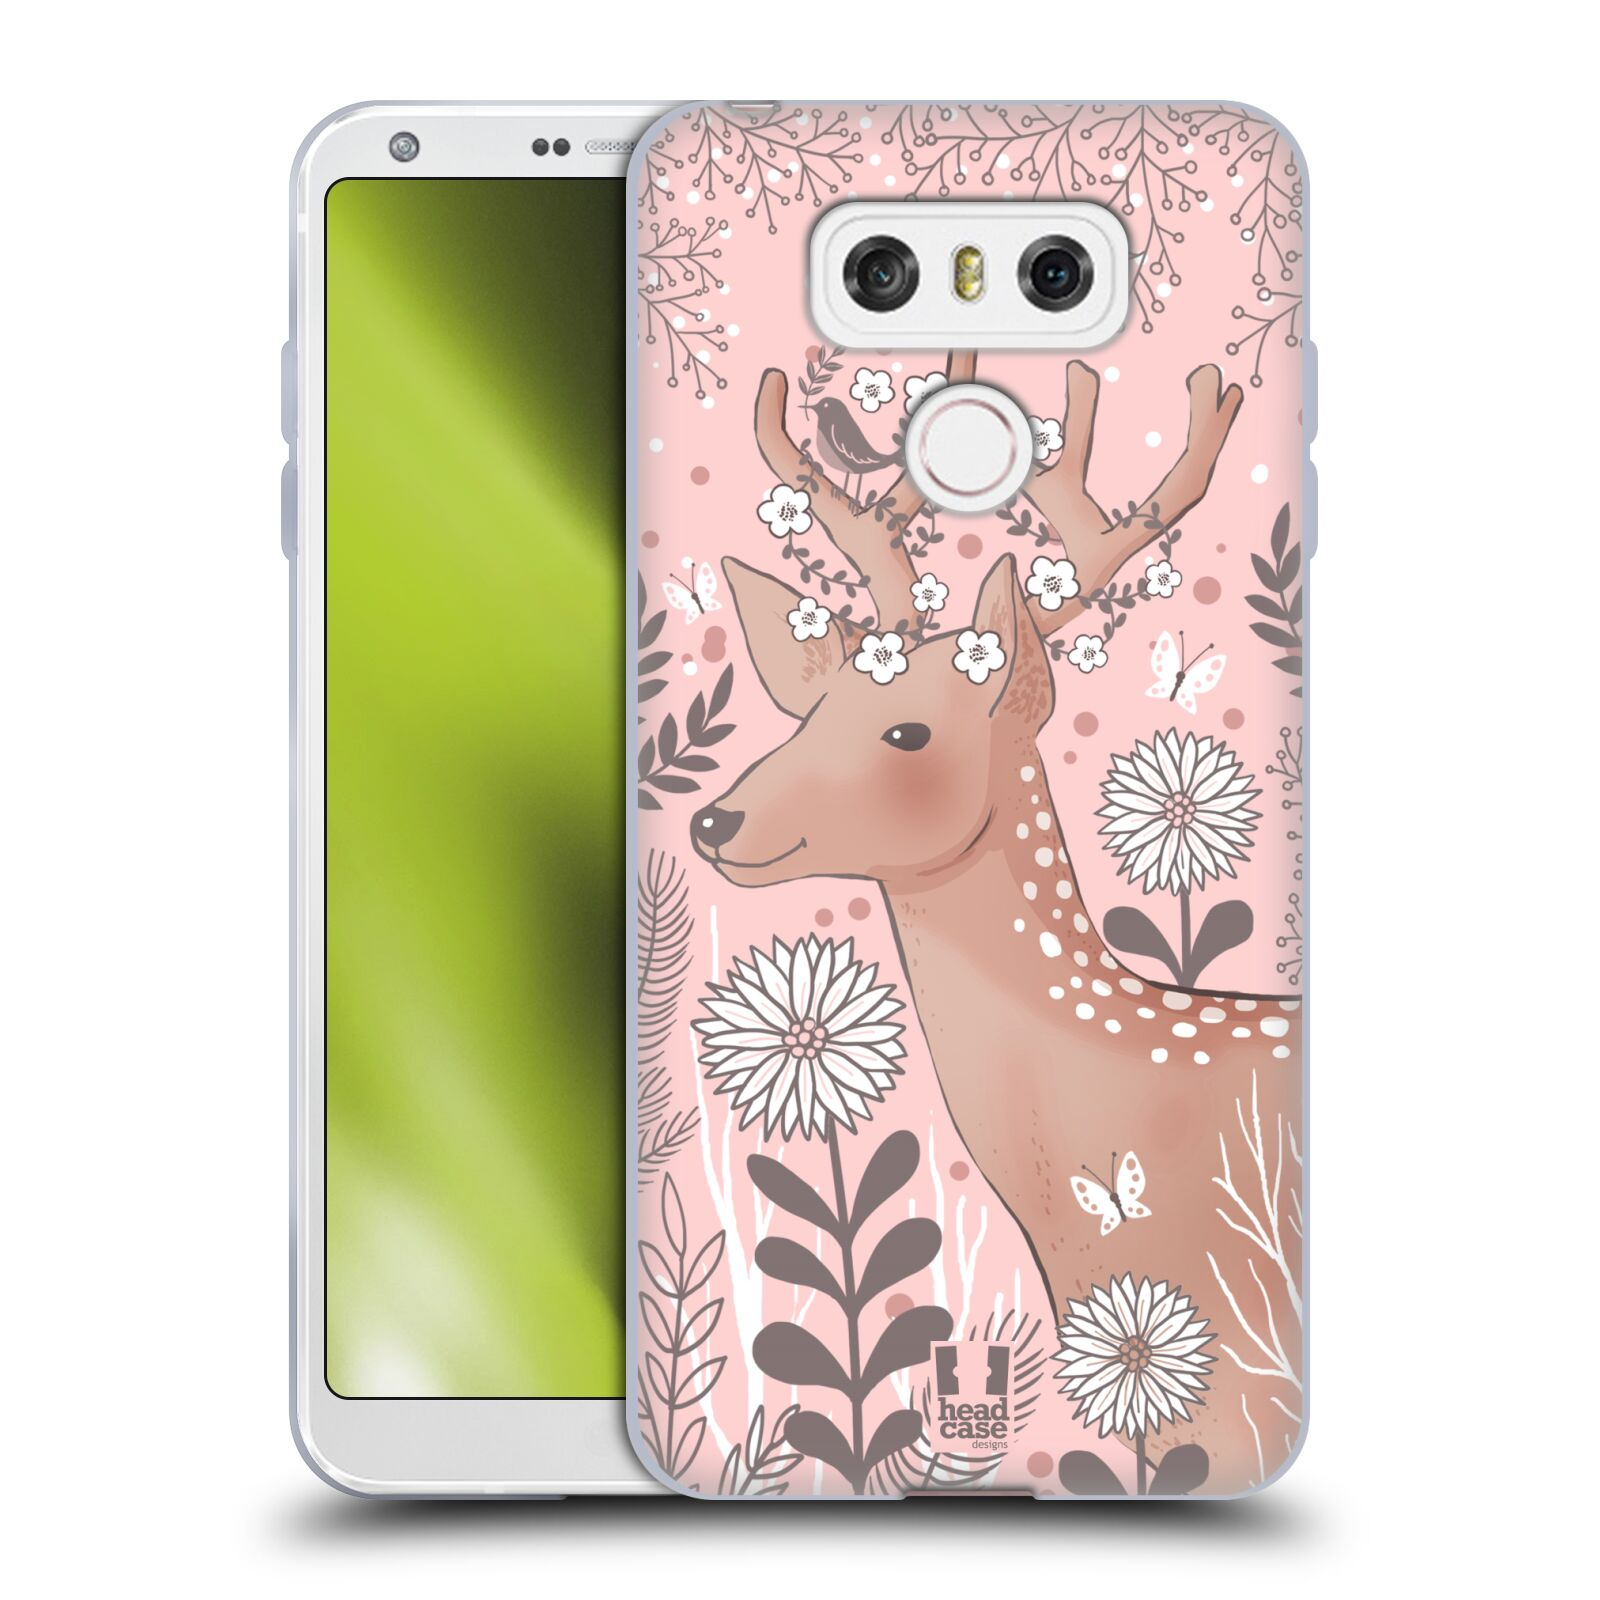 HEAD-CASE-DESIGNS-BLUSH-GARDEN-SOFT-GEL-CASE-FOR-LG-G6